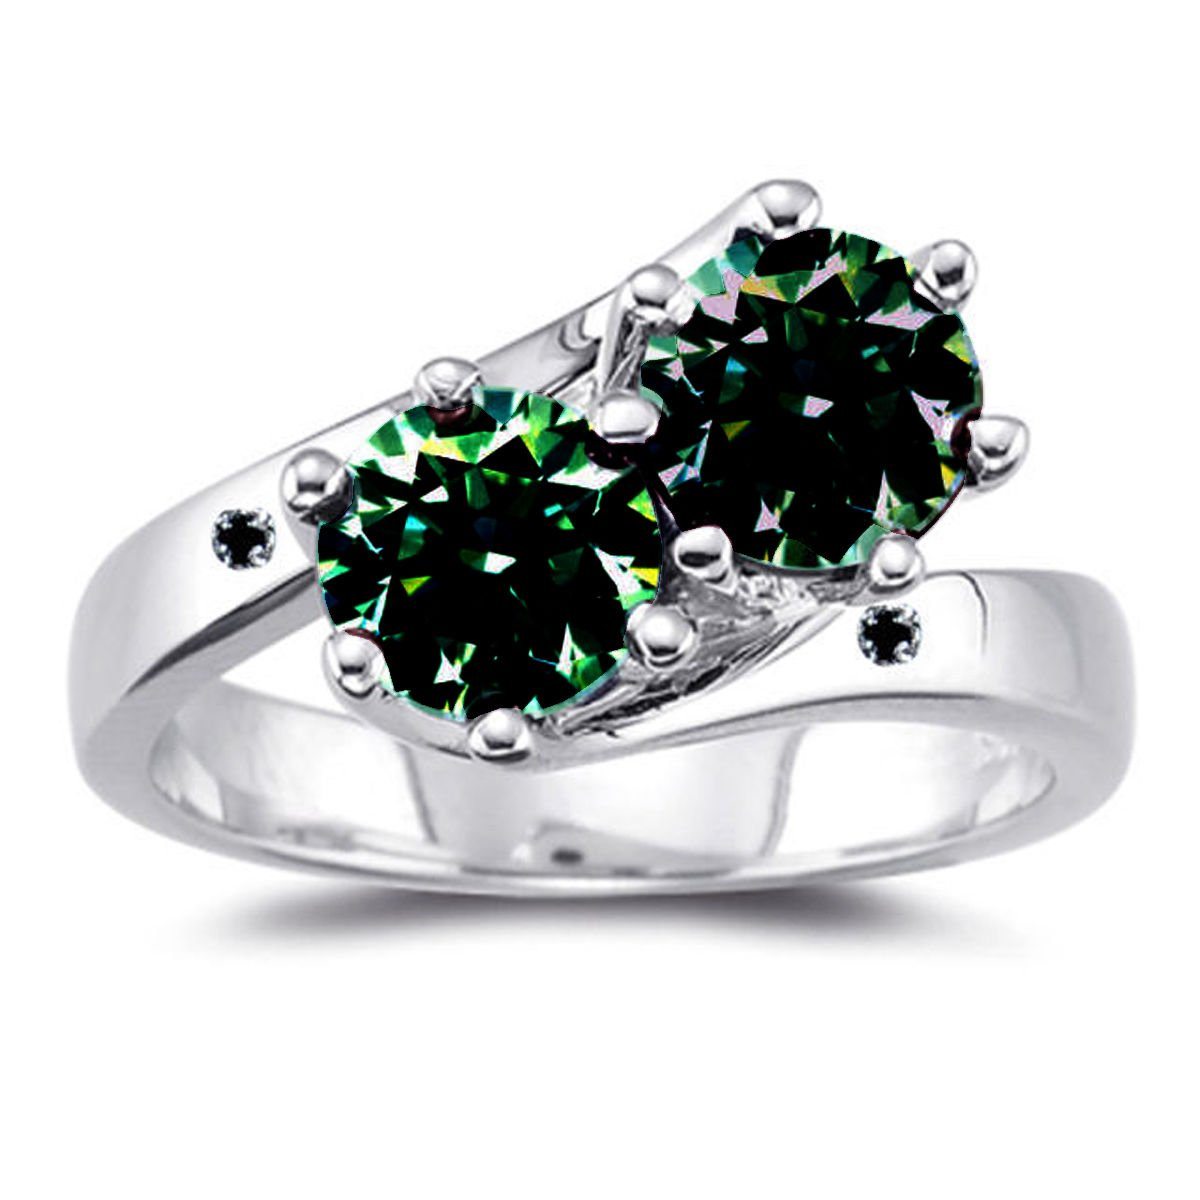 RINGJEWEL 2.44 ct VVS1 Round Moissanite Solitaire Silver Plated Engagement Ring Green Brown Color Size 7